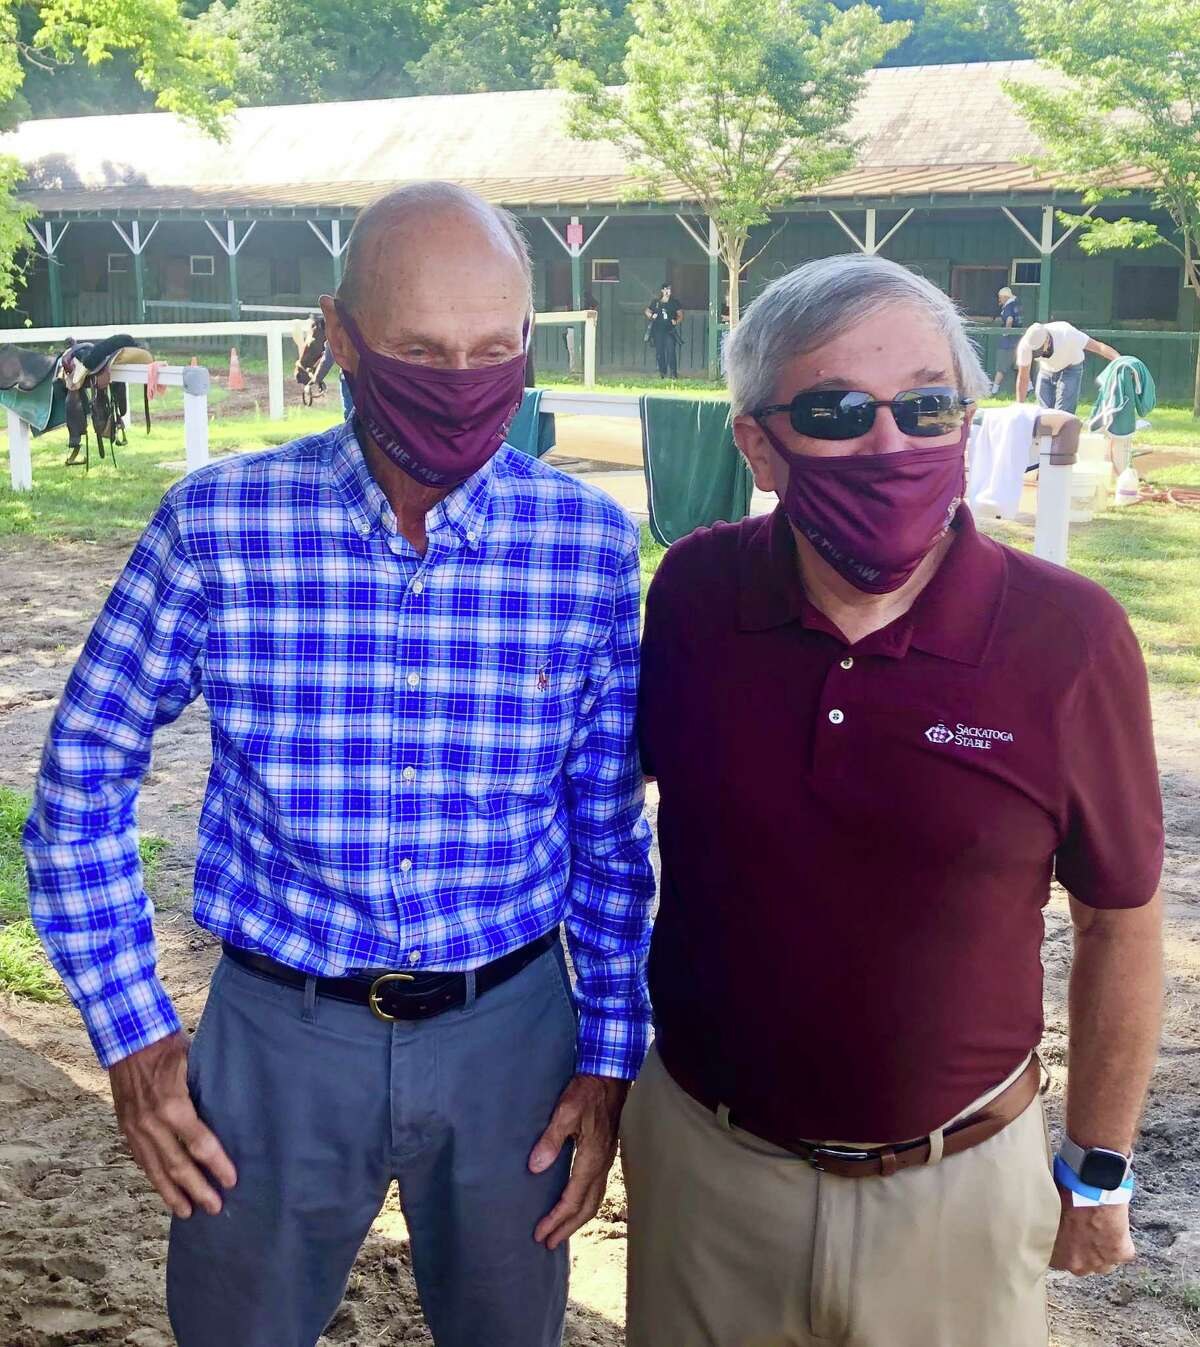 Everyone was in a good mood at trainer Barclay Tagg's barn on the Saratoga backstretch Saturday morning after stable star Tiz the Law breezed on the main track. That's Tagg on the left and Jack Knowlton, the operating manager of Sackatoga Stable, which owns Tiz the Law, on the right. Notice they are wearing their custom made Tiz the Law facemasks while posing for the paparazzi. They better have the masks on. It 'tiz the law' in these parts. (Tim Wilkin / Times Union)